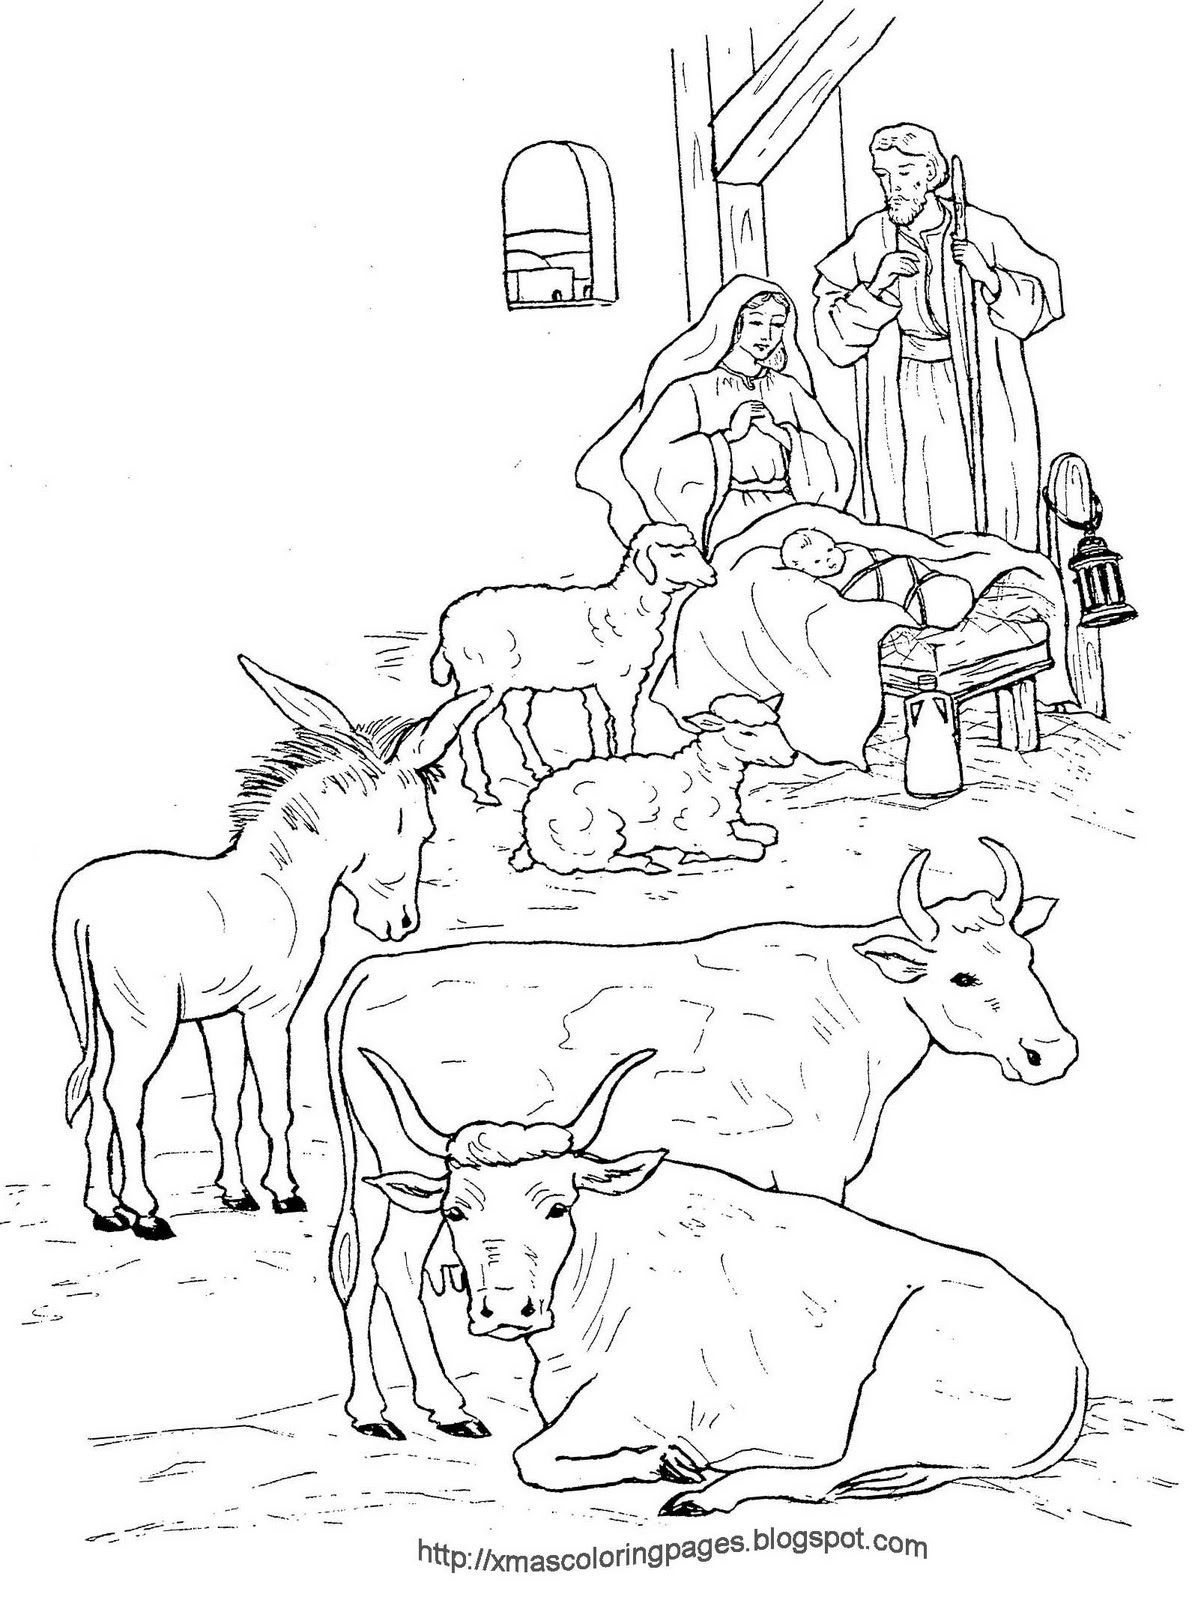 XMAS COLORING PAGES Nativity coloring pages, Jesus